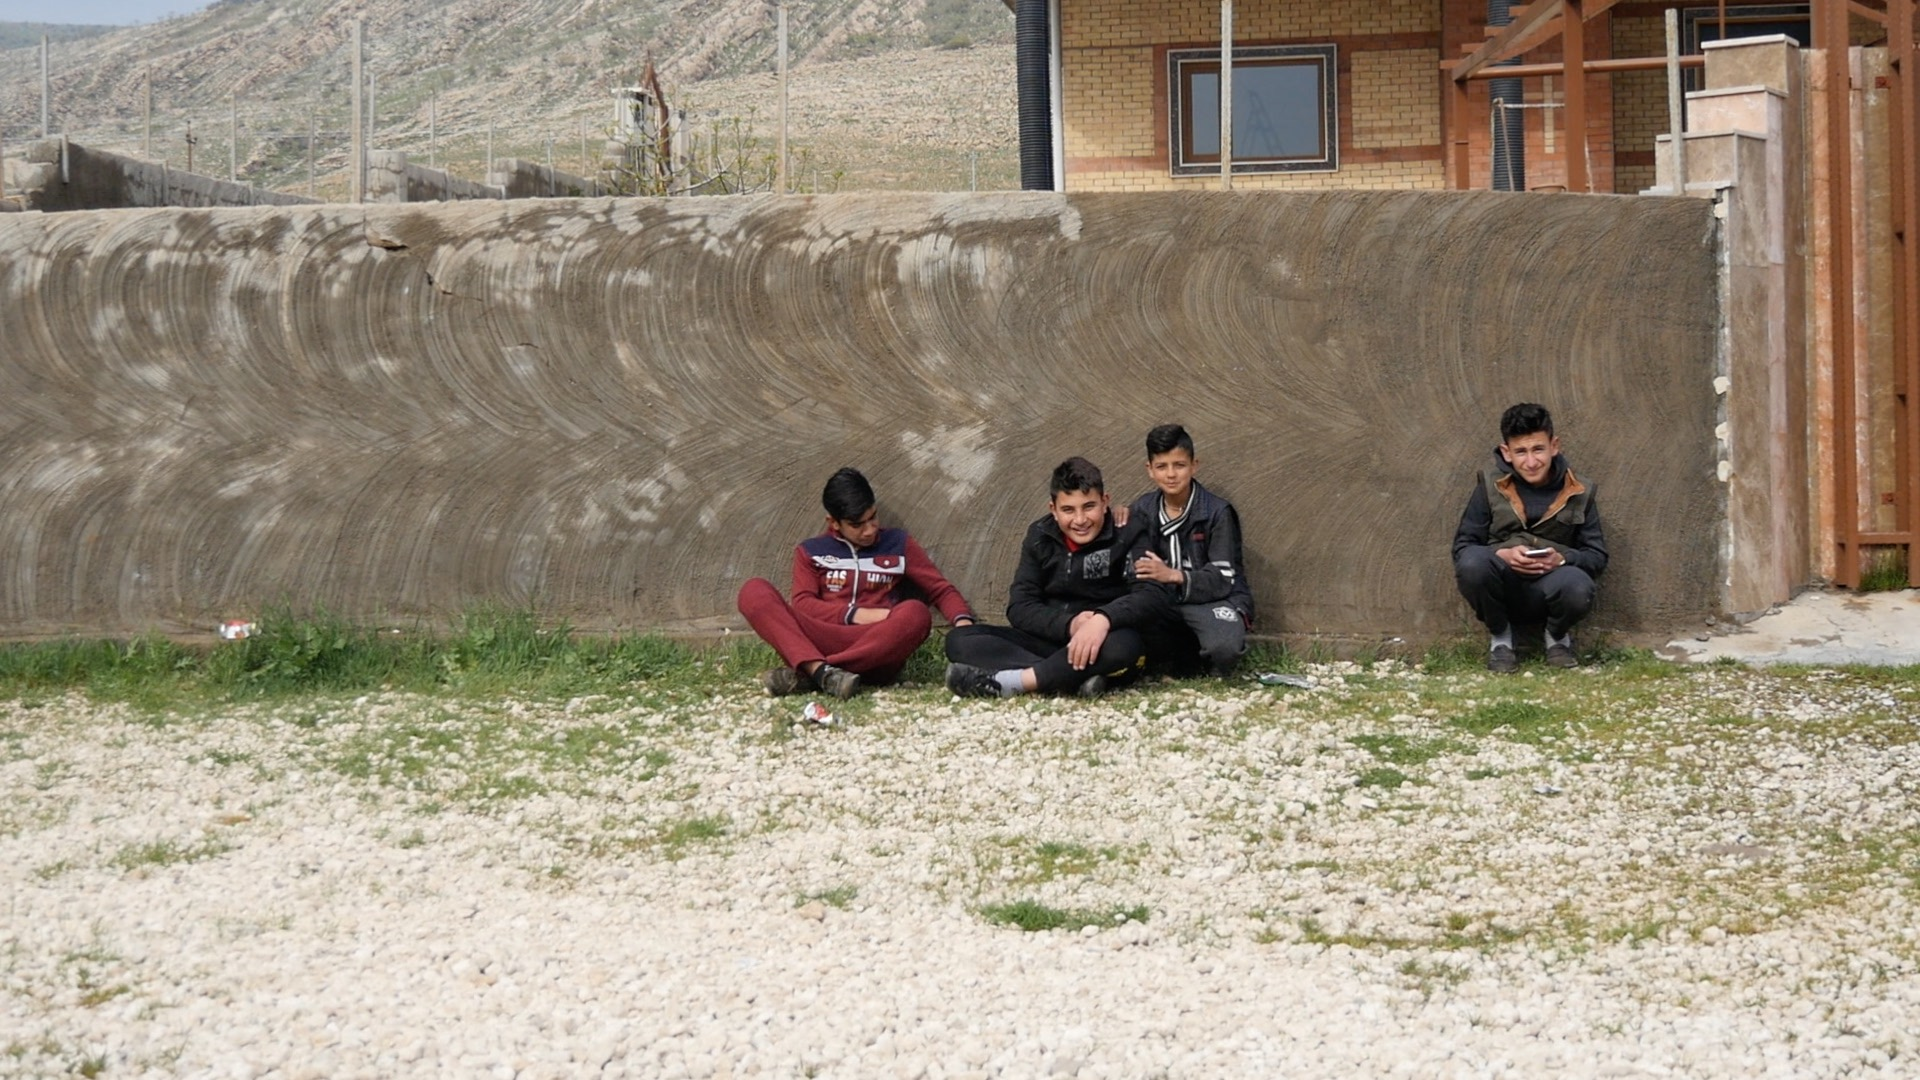 Life after DAESH in Northern Iraq